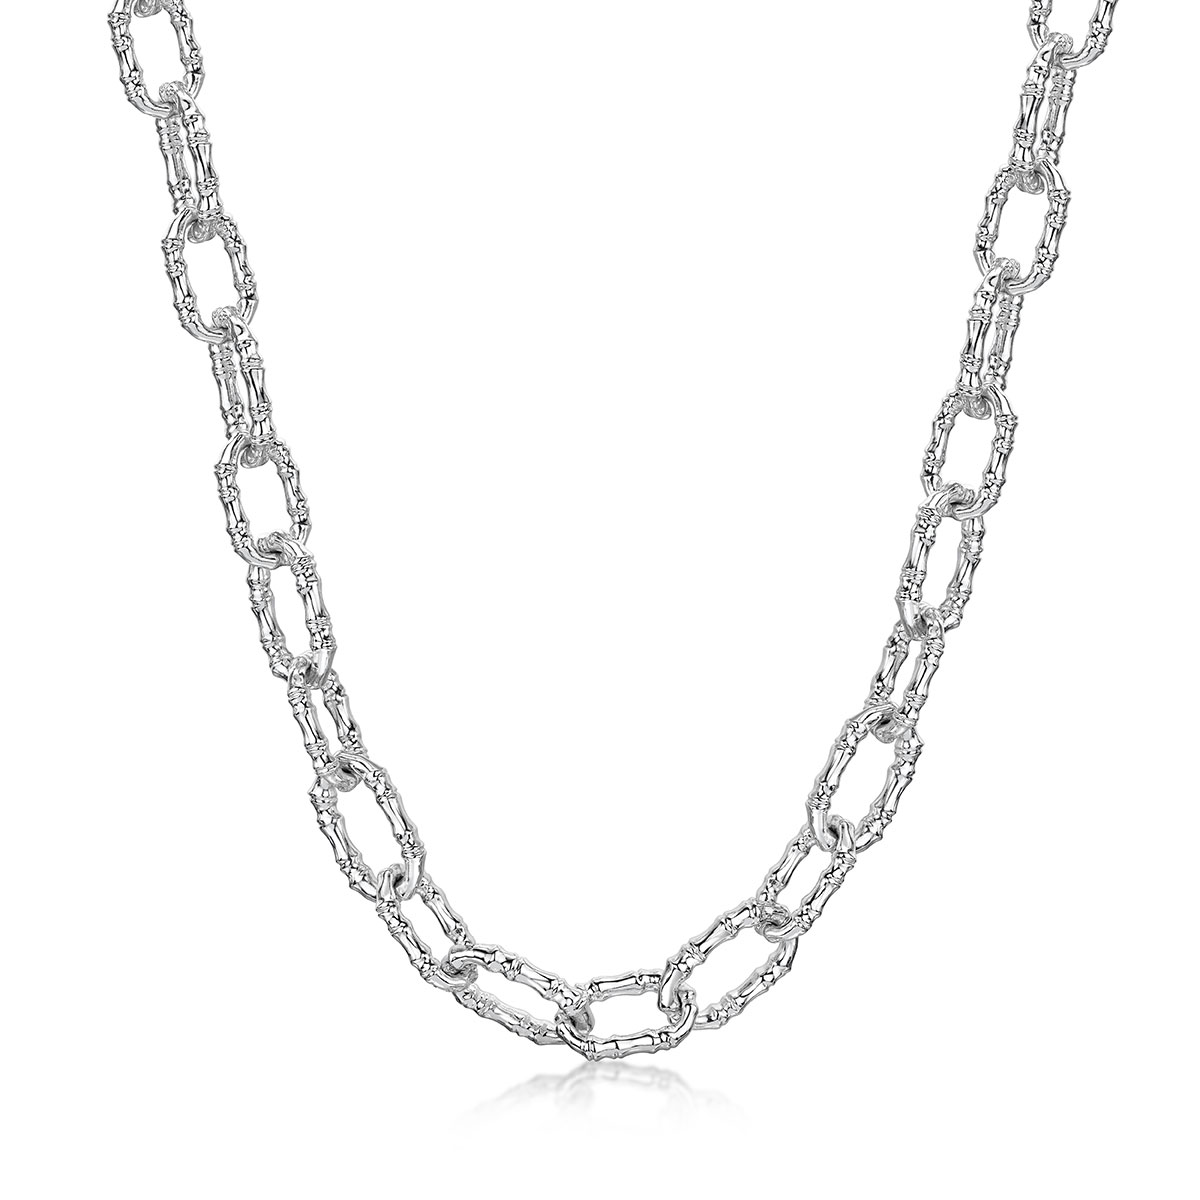 ROX Cane Silver Oval Link Chain